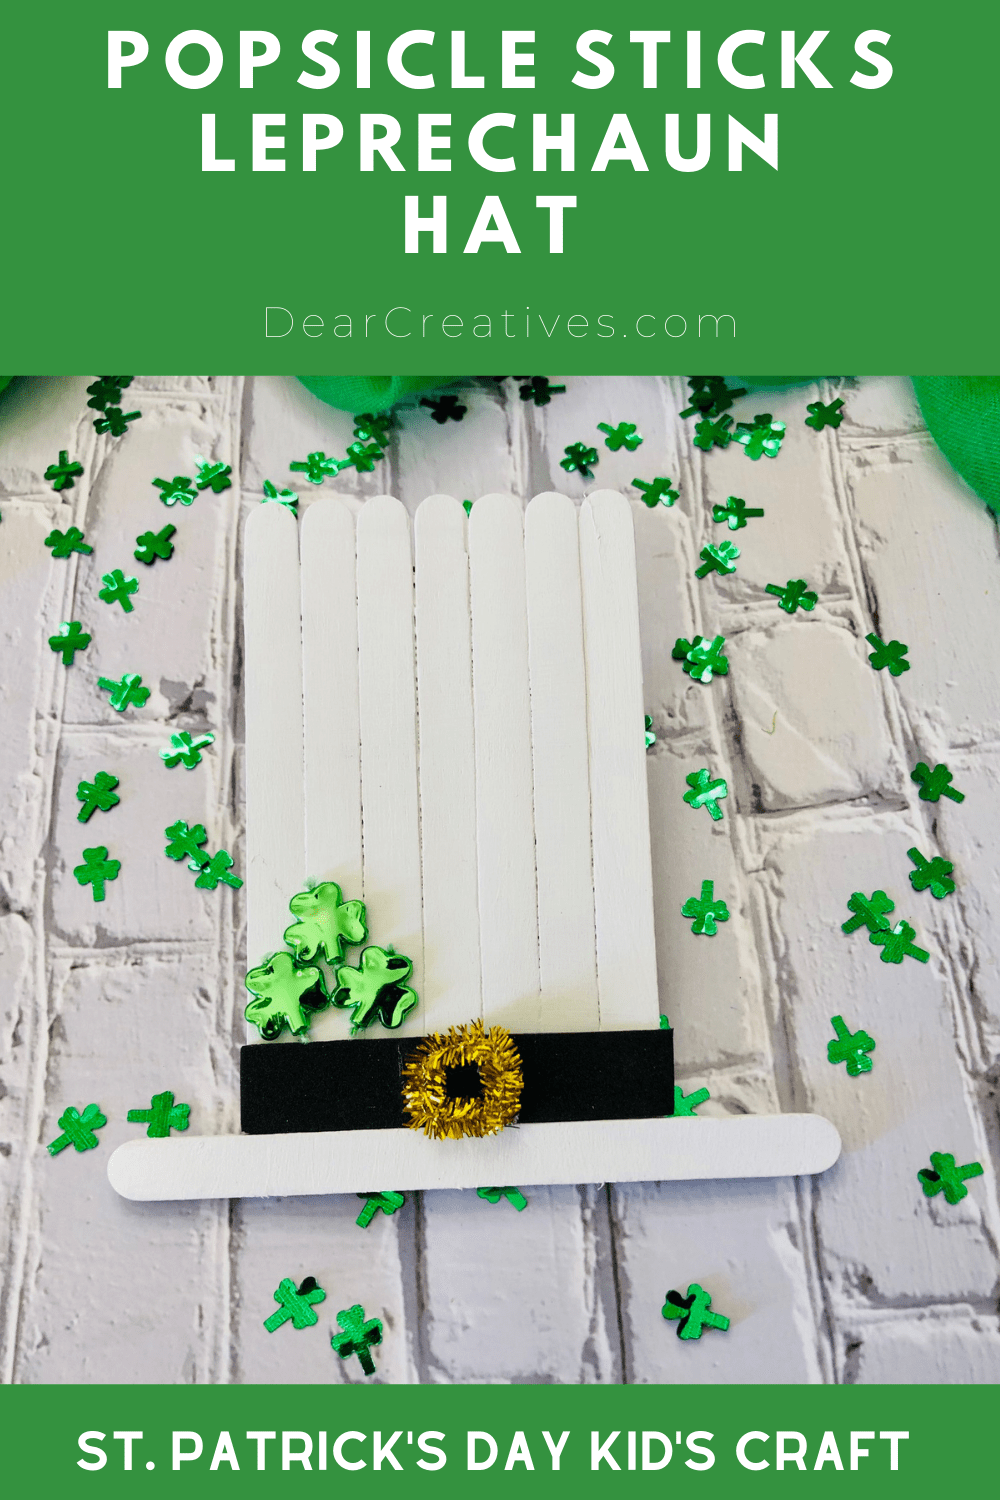 Popsicle Stick Leprechaun Hat – St. Patrick's Day Kid's Craft